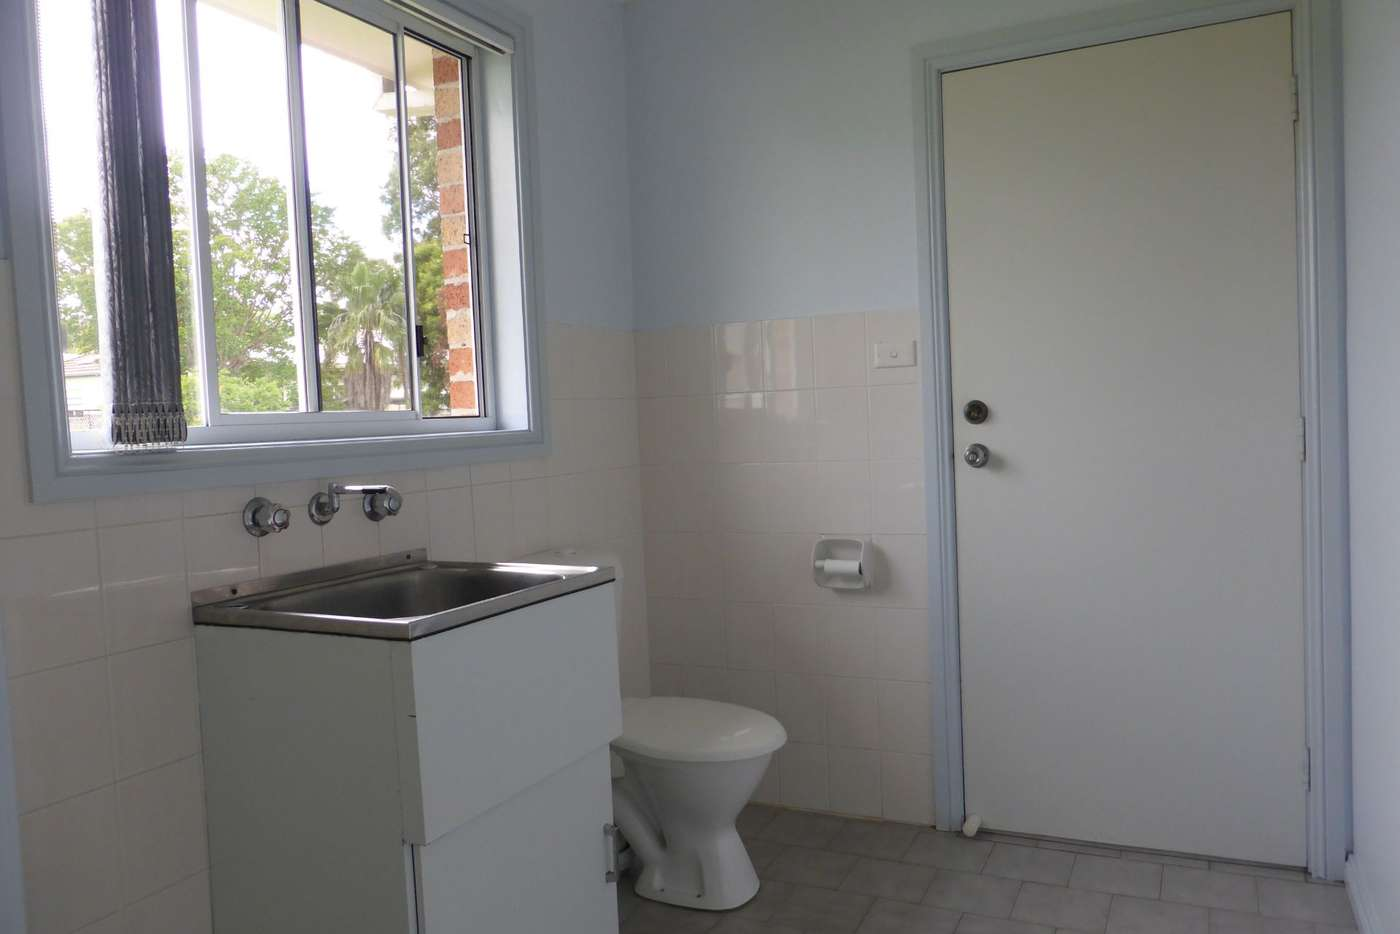 Sixth view of Homely villa listing, 4/37 Burrabogee Rd, Pendle Hill NSW 2145